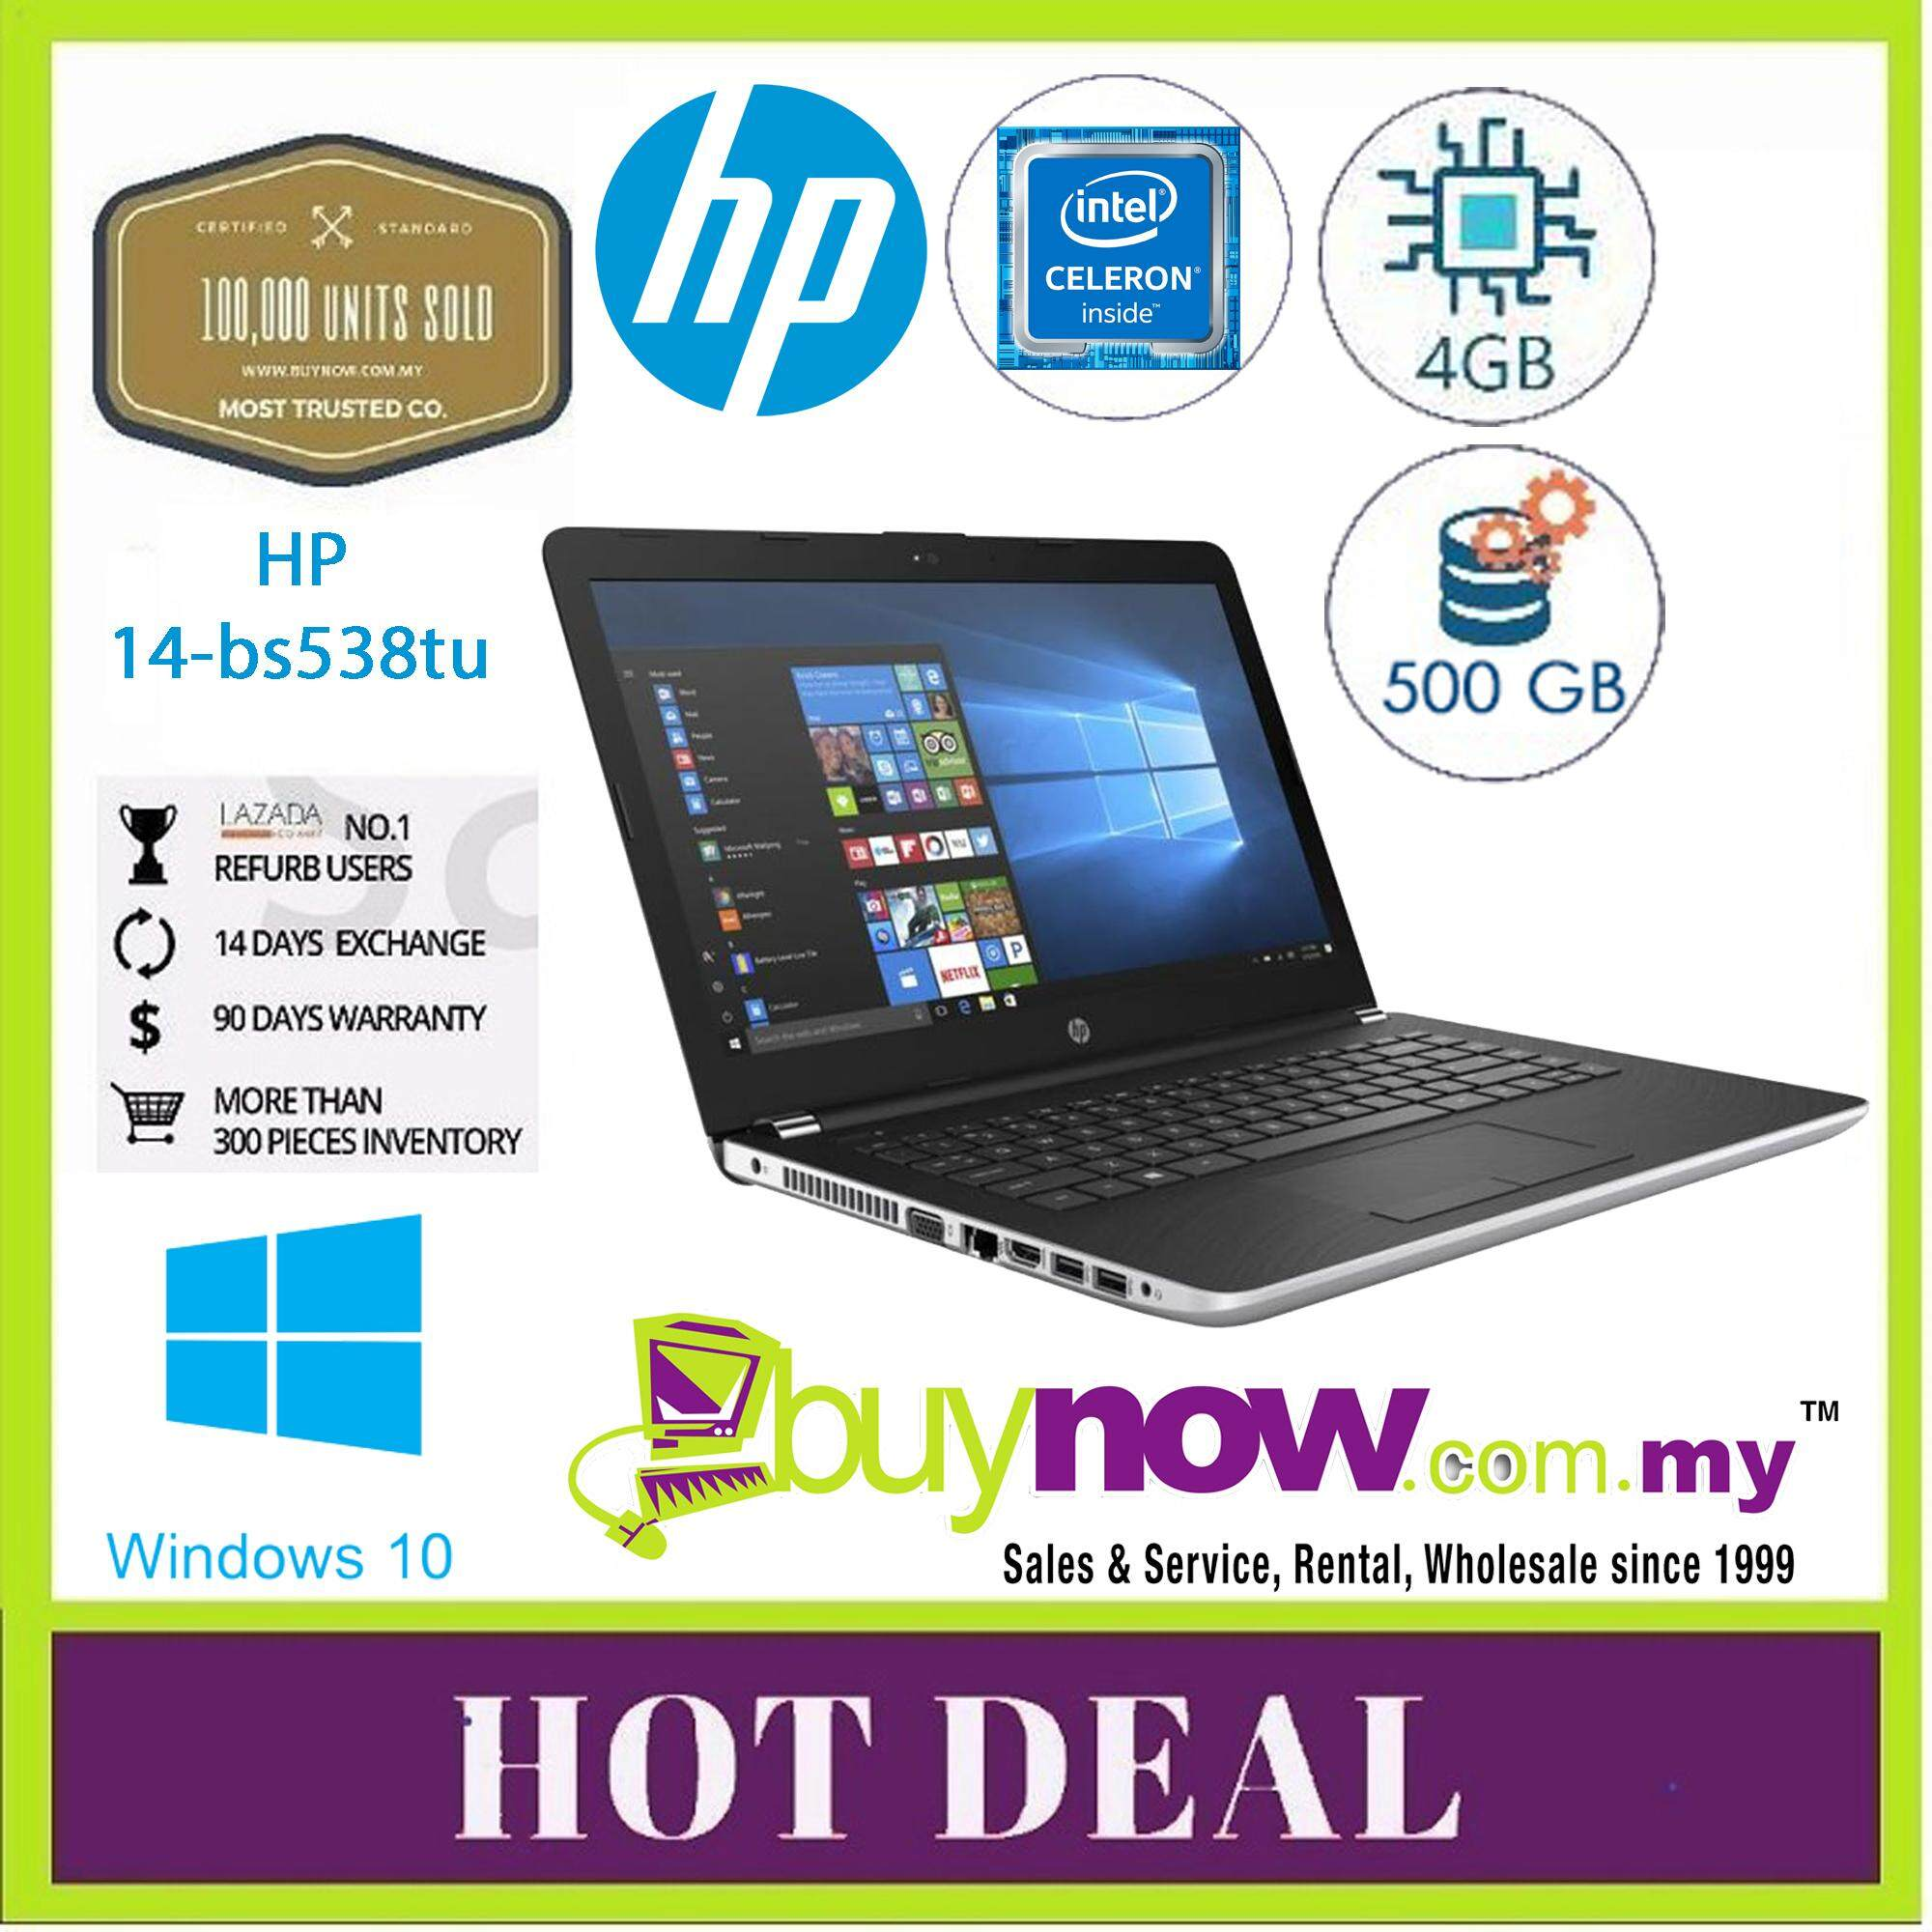 REFURBISHED USED NOTEBOOK LAPTOP HP 14-bs538tu INTEL CELERON N3060 4GB 500GB WINDOWS 10 HOME SINGLE LANGUAGE 5 MONTHS WARRANTY Malaysia